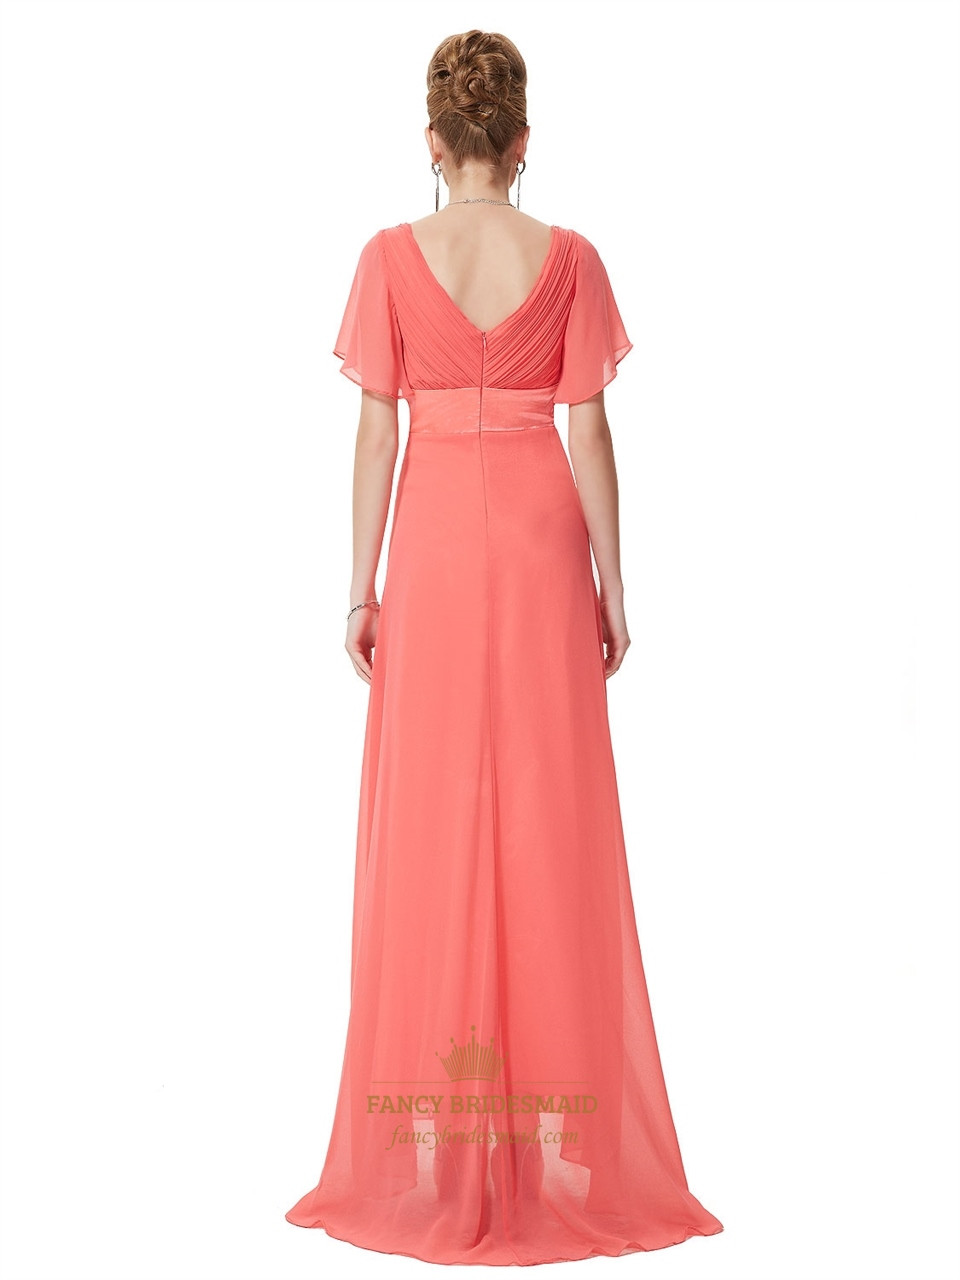 Where to buy mother of the bride dresses in raleigh nc for Cheap wedding dresses in nc